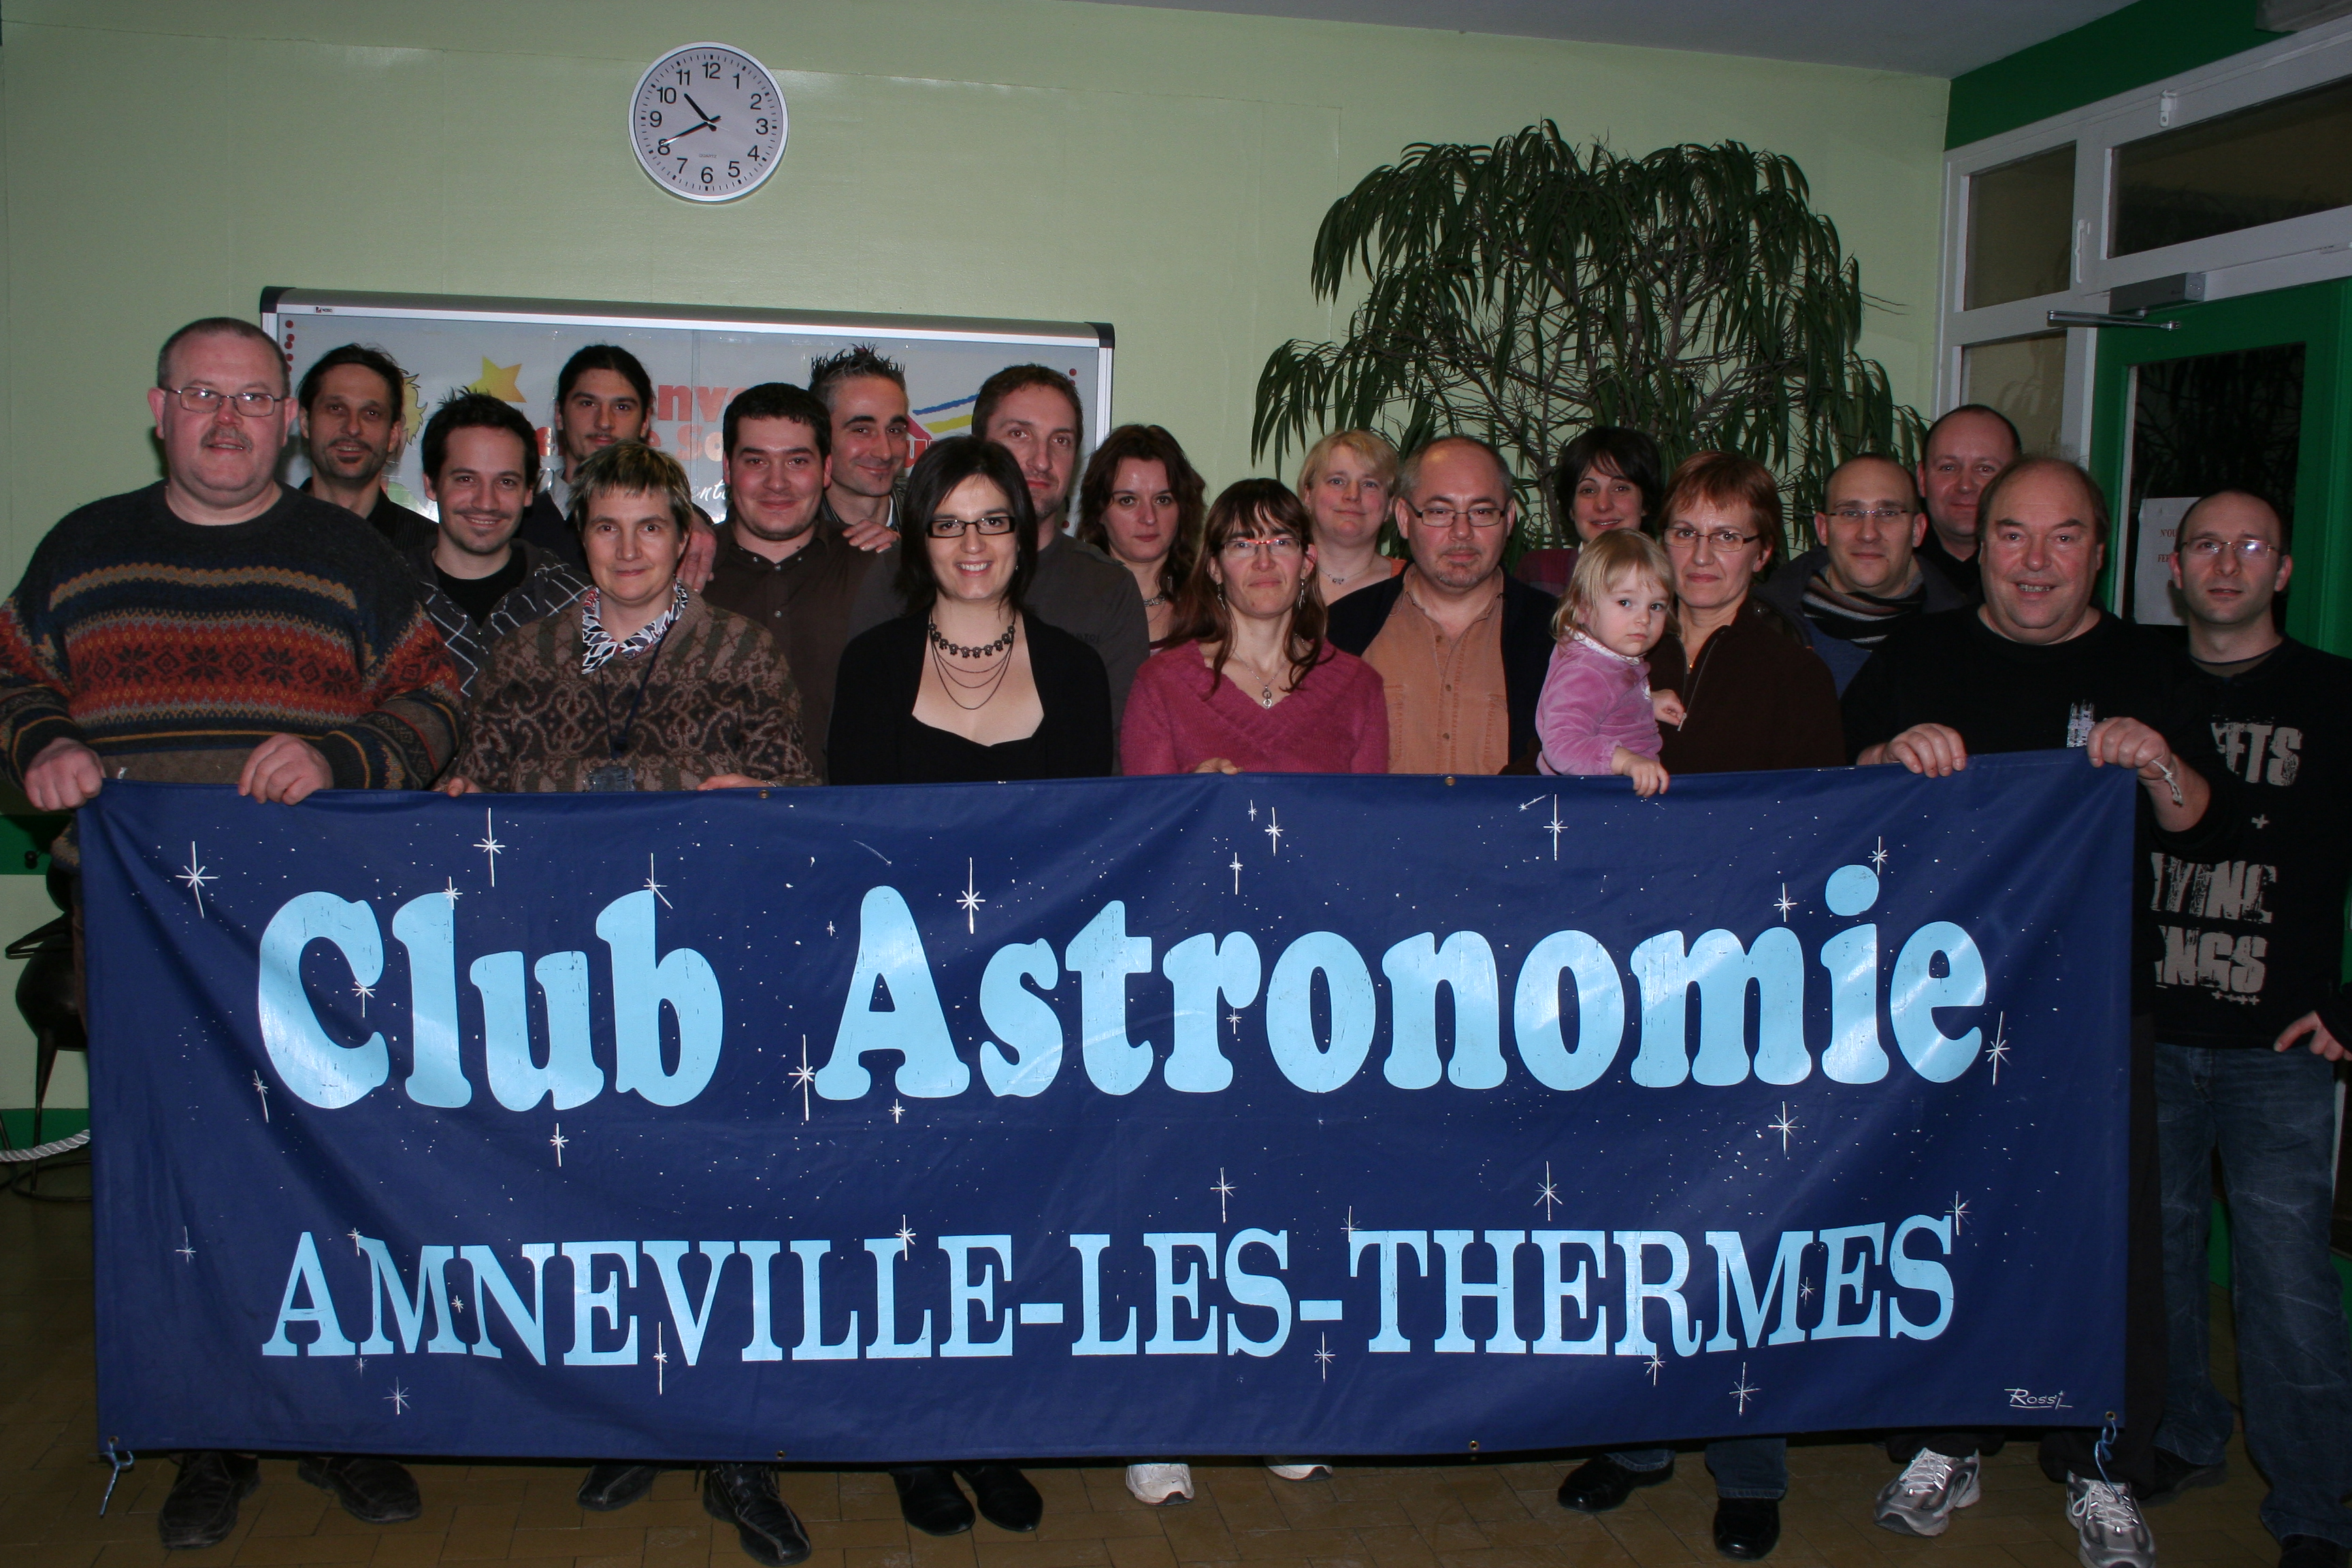 http://astronomie.files.wordpress.com/2007/07/2010-01-08-groupe-04.jpg